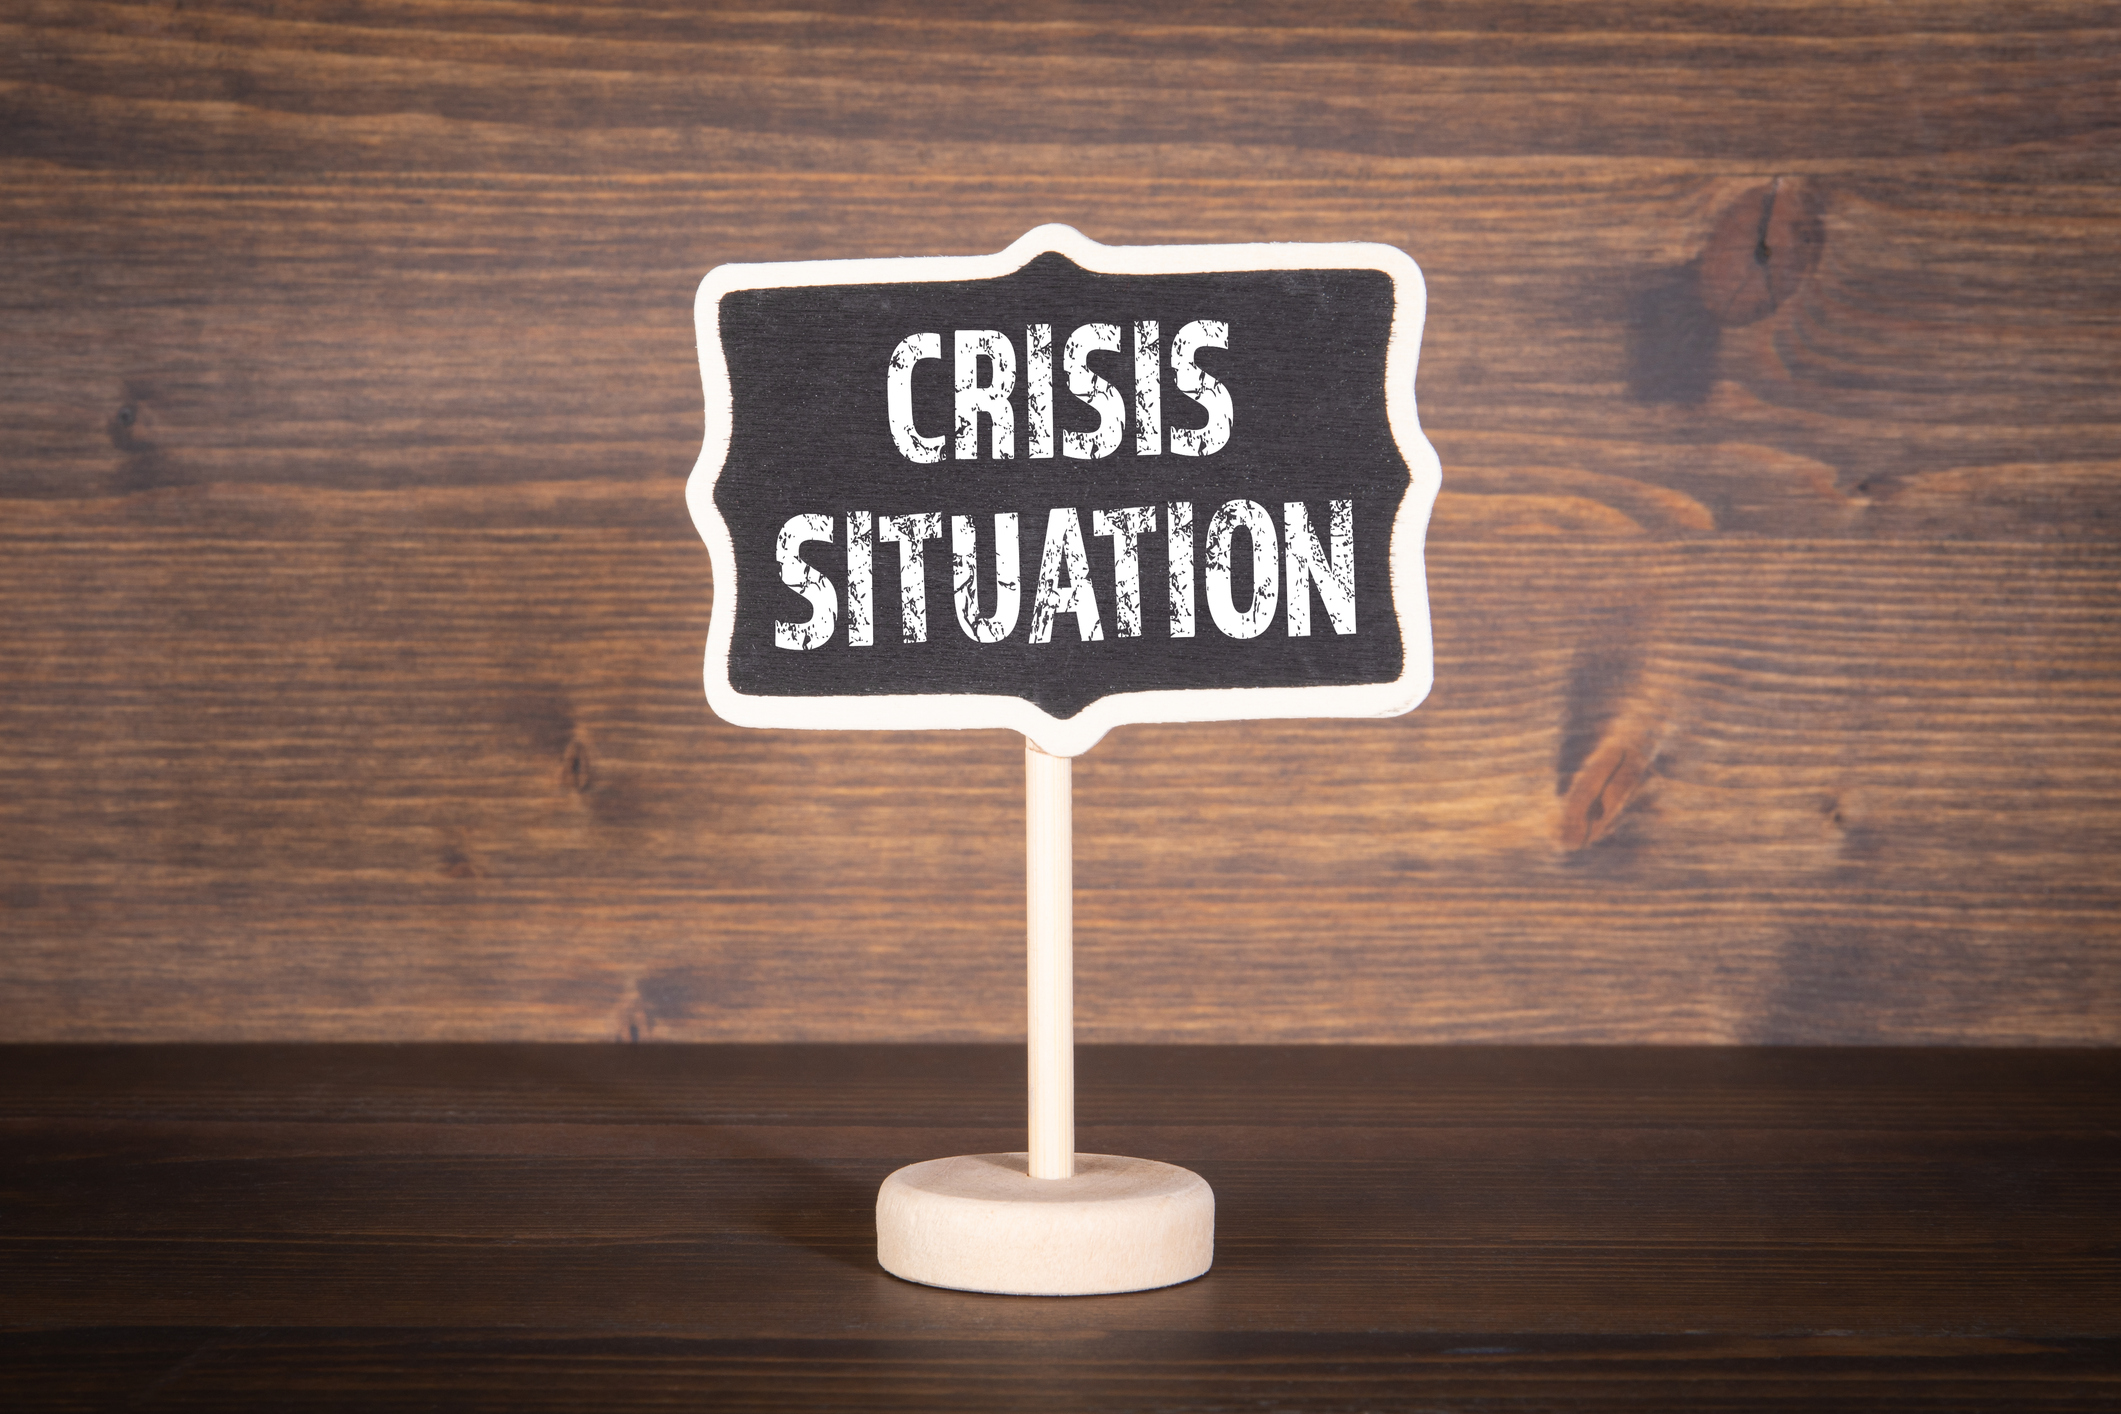 The Rise of Addiction and Teletherapy in the COVID-19 Crisis